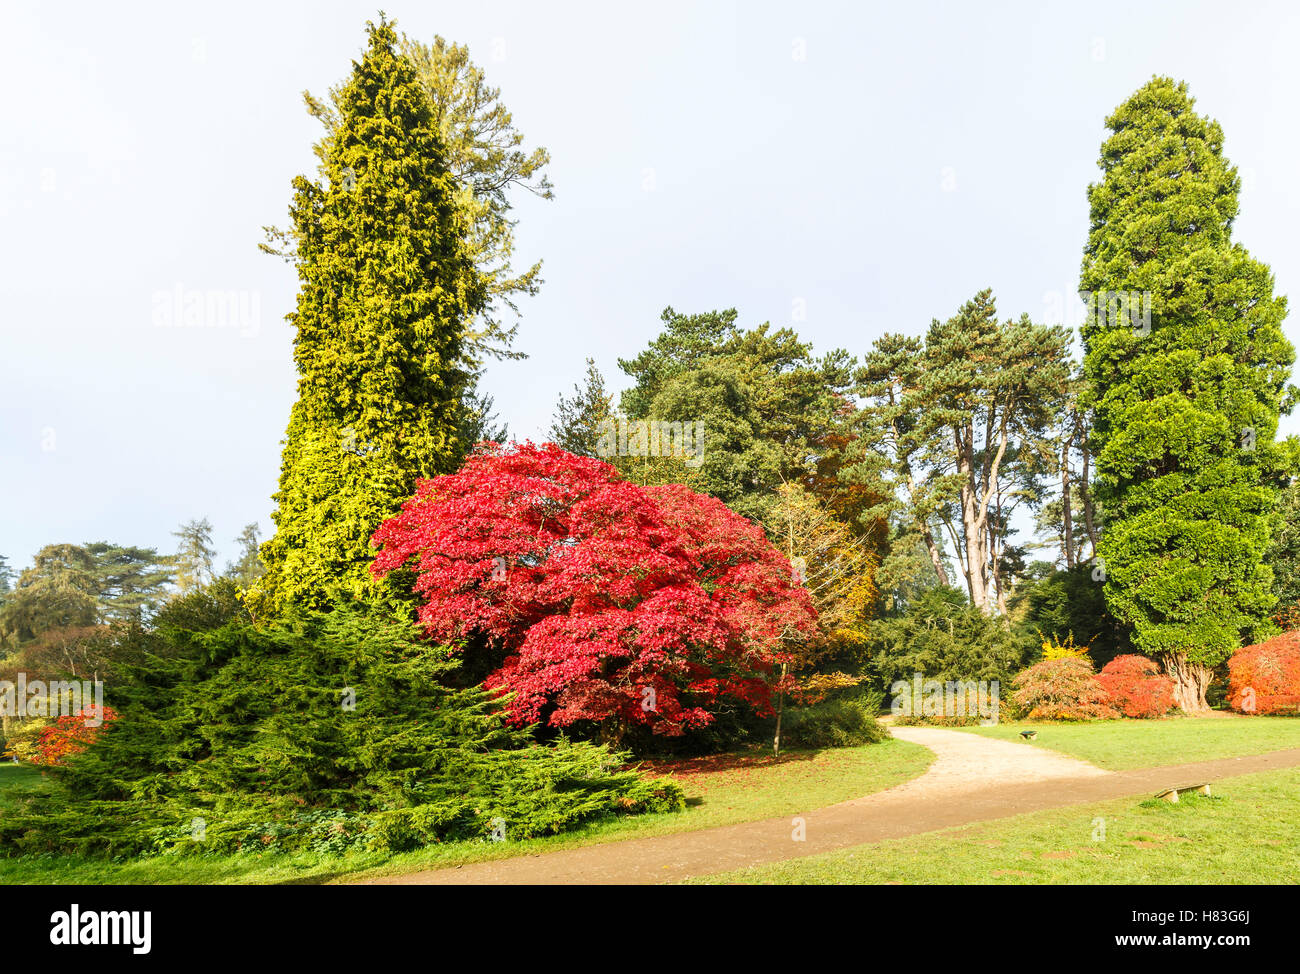 Red Acer palmatum (Japanese maple) amongst conifers in Westonbirt Arboretum near Tetbury, Gloucestershire, in autumn - Stock Image